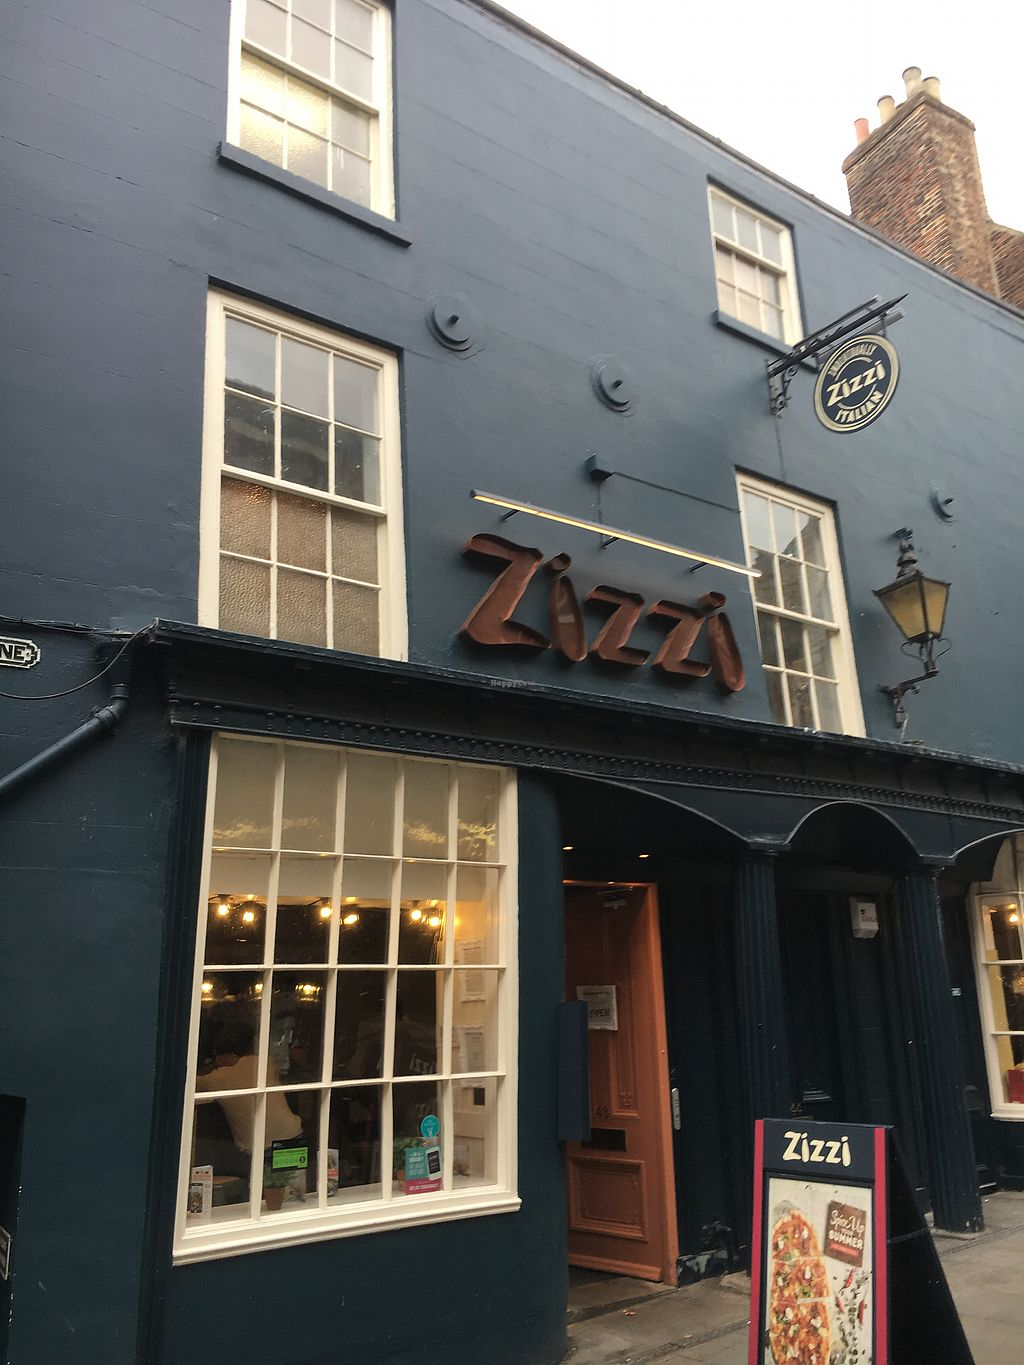 """Photo of Zizzi  by <a href=""""/members/profile/hack_man"""">hack_man</a> <br/>Outside a new lick of paint 2017 <br/> September 3, 2017  - <a href='/contact/abuse/image/77527/300499'>Report</a>"""